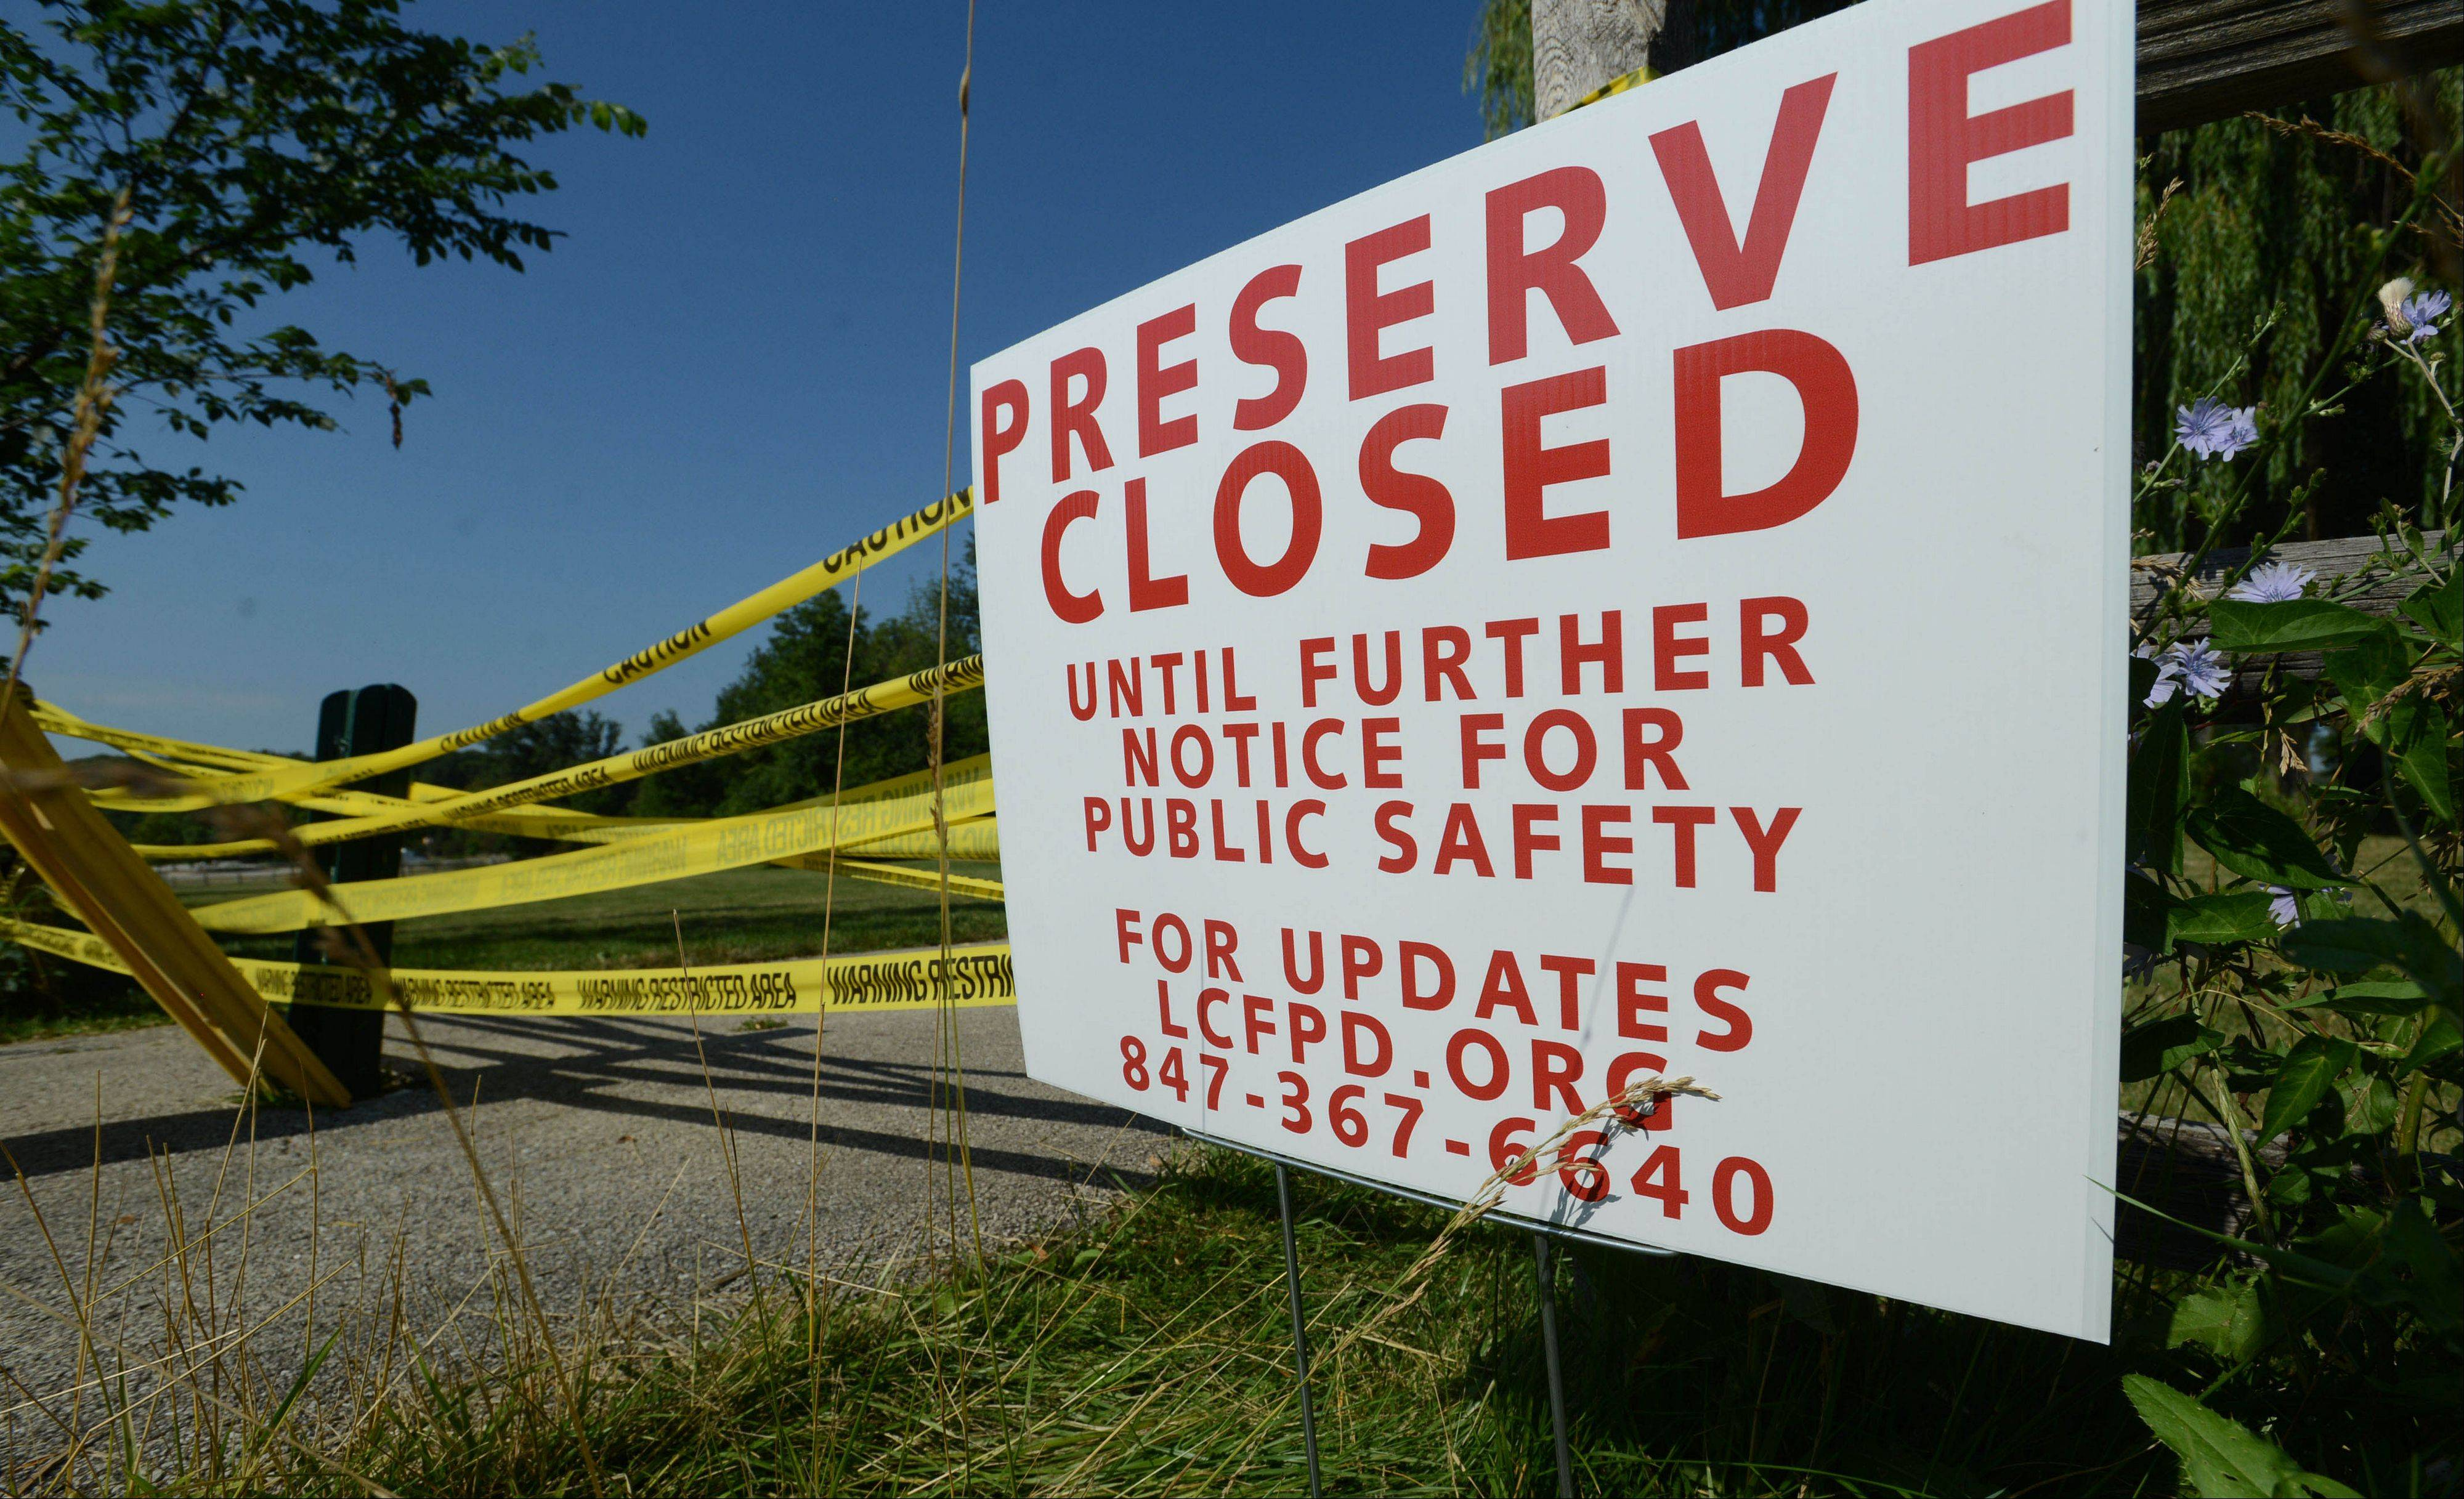 Independence Grove Forest Preserve near Libertyville remains closed today due to a bomb threat. Officials said the park will not reopen until an investigation of the threat is completed.